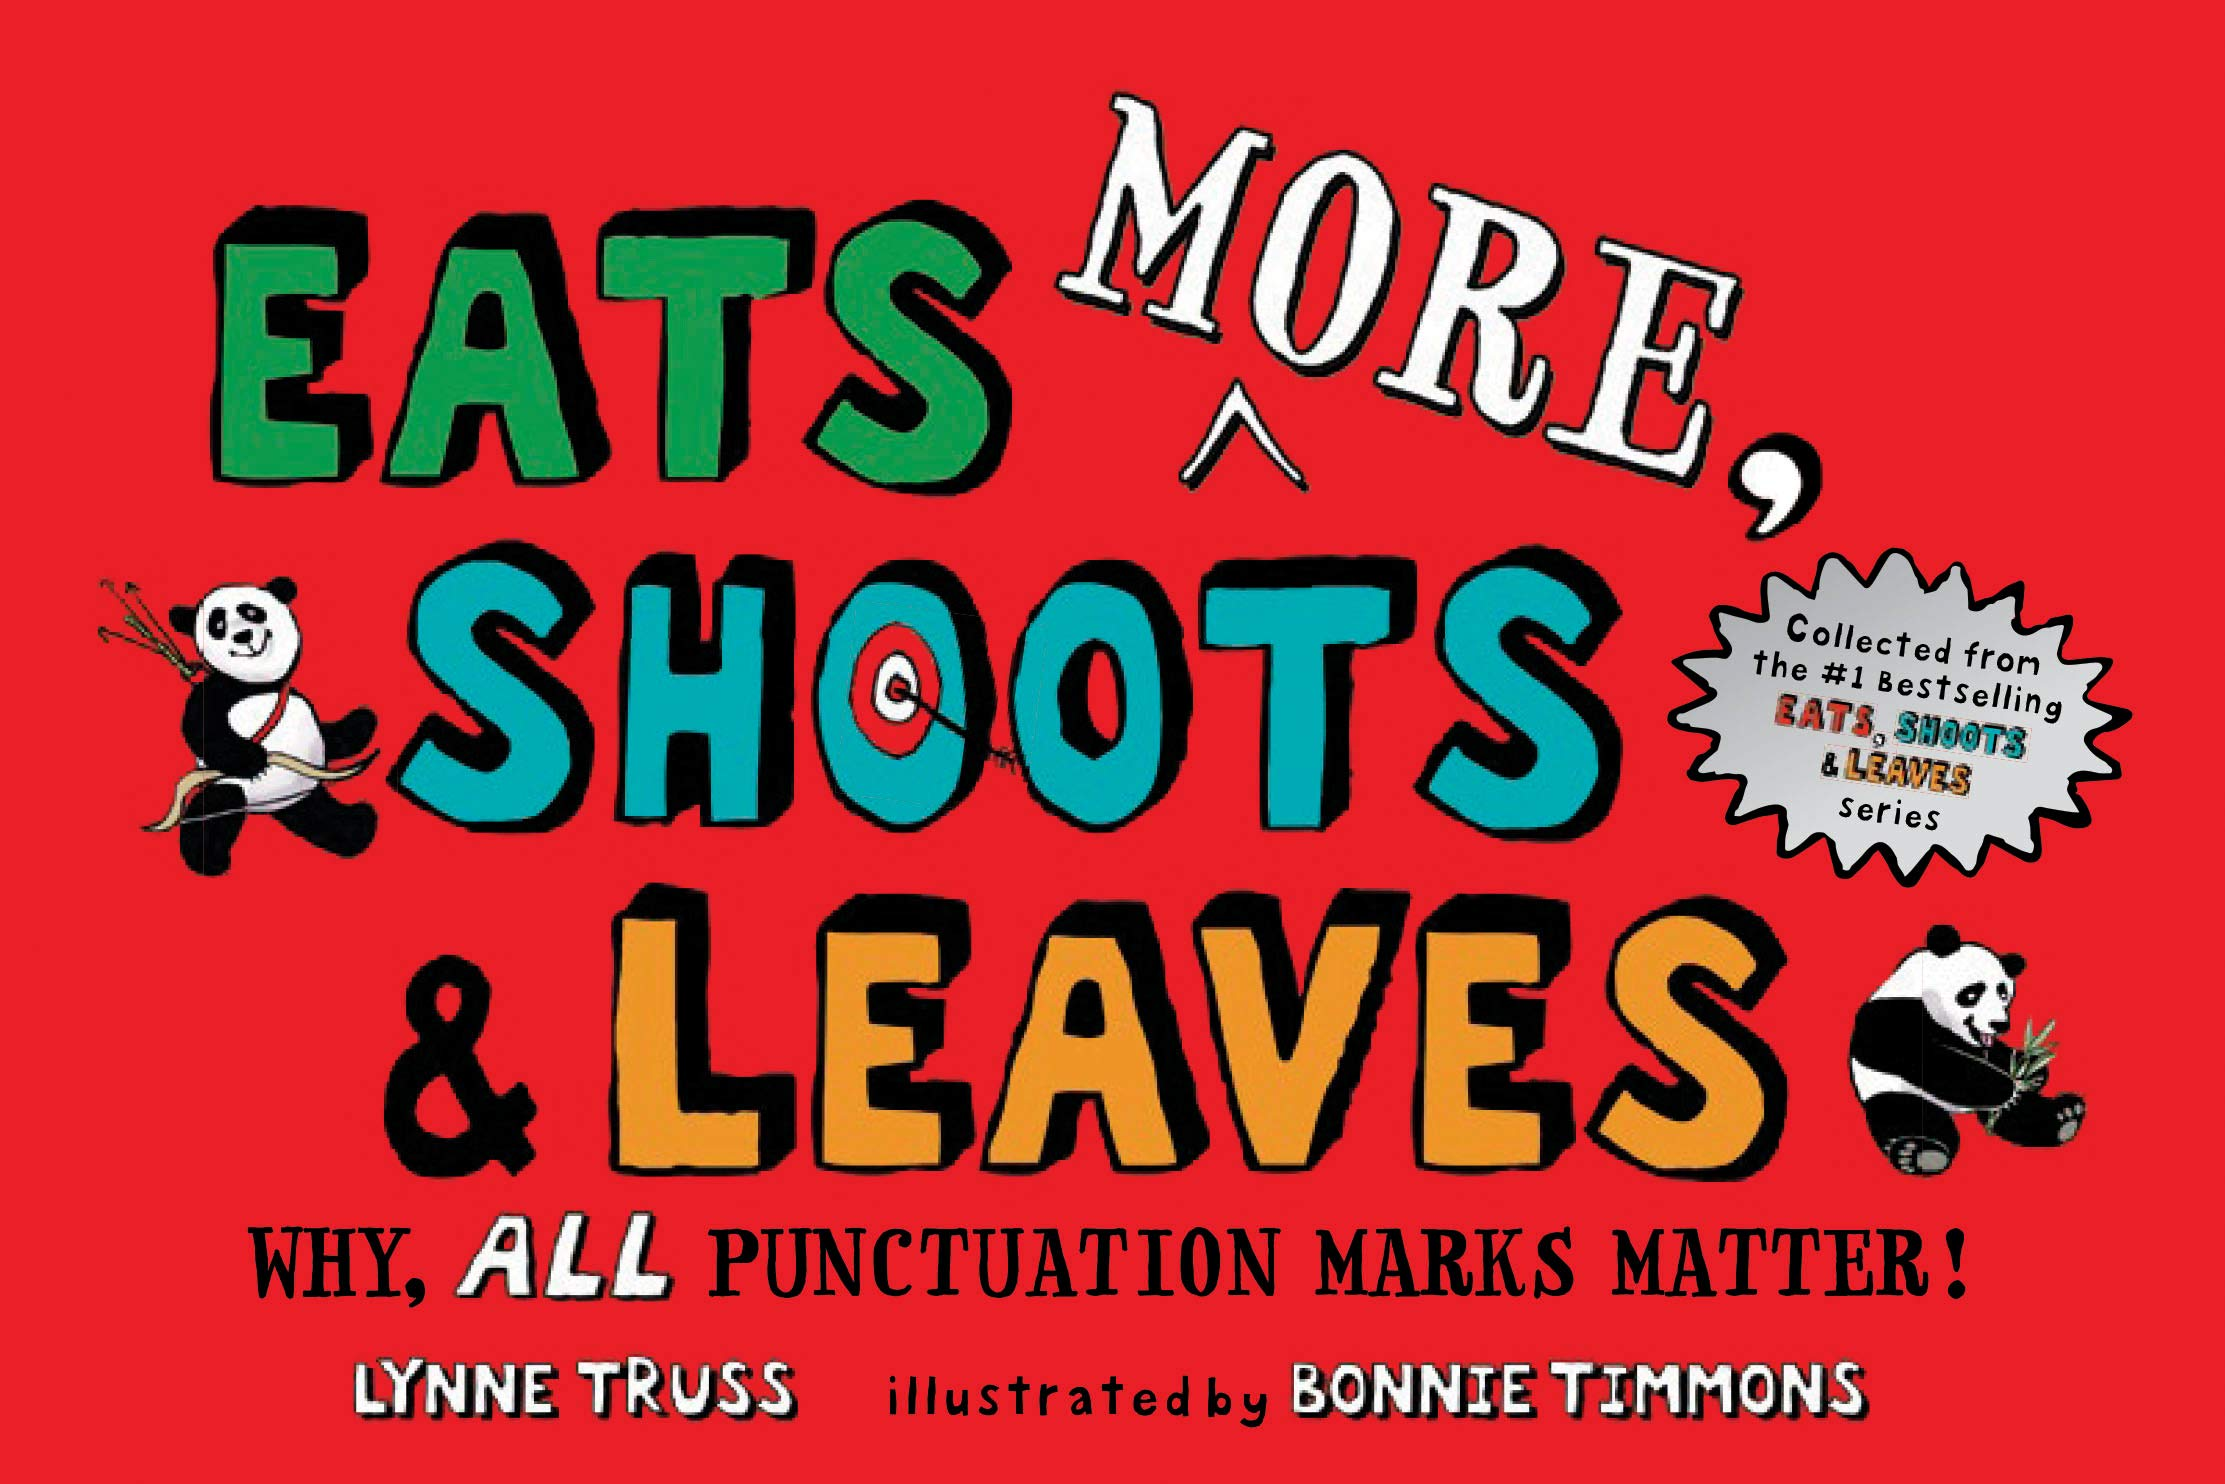 ALL Punctuation Marks Matter! Shoots /& Leaves Why Eats MORE